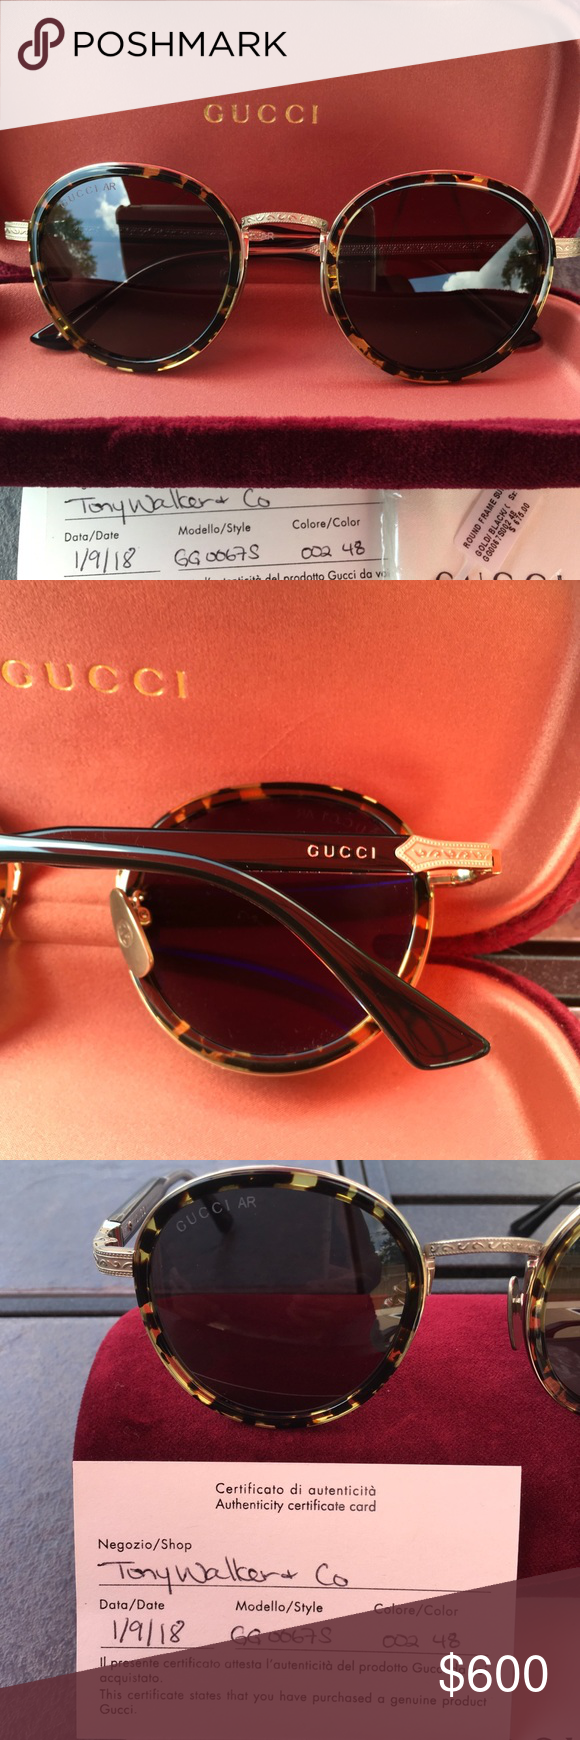 cecdecae56b Spotted while shopping on Poshmark  NWT AUTHENTIC GUCCI TORTOISE FRAME!   poshmark  fashion  shopping  style  Gucci  Accessories